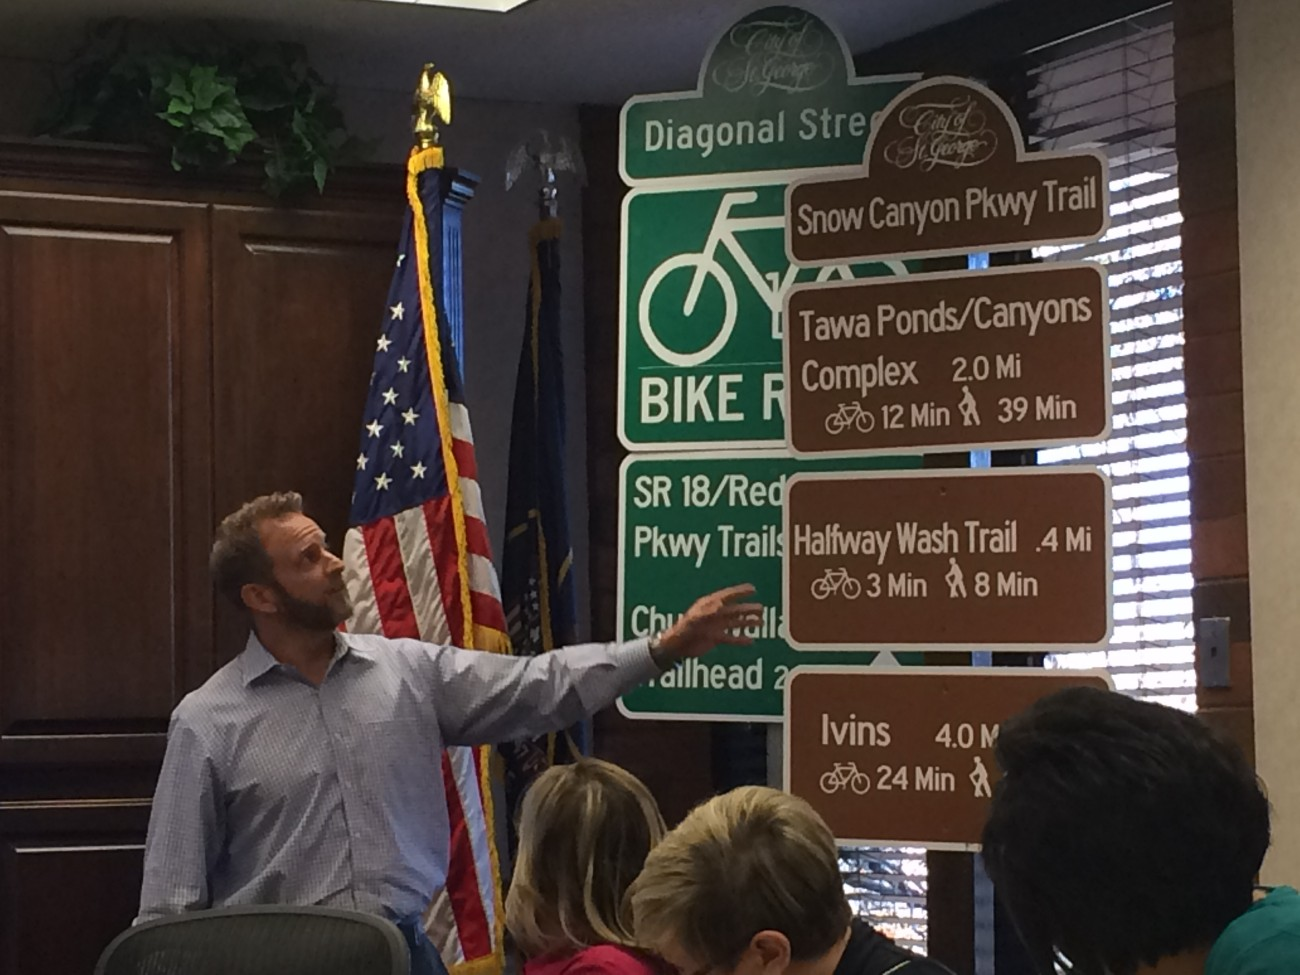 Marc Mortensen, assistant to the City Manager of St. George, during a presentation to the City Council related to new trail system signage and the activities of the Active Transportation Committee, Feb. 11, 2016 | Photo by Mori Kessler, St. George News